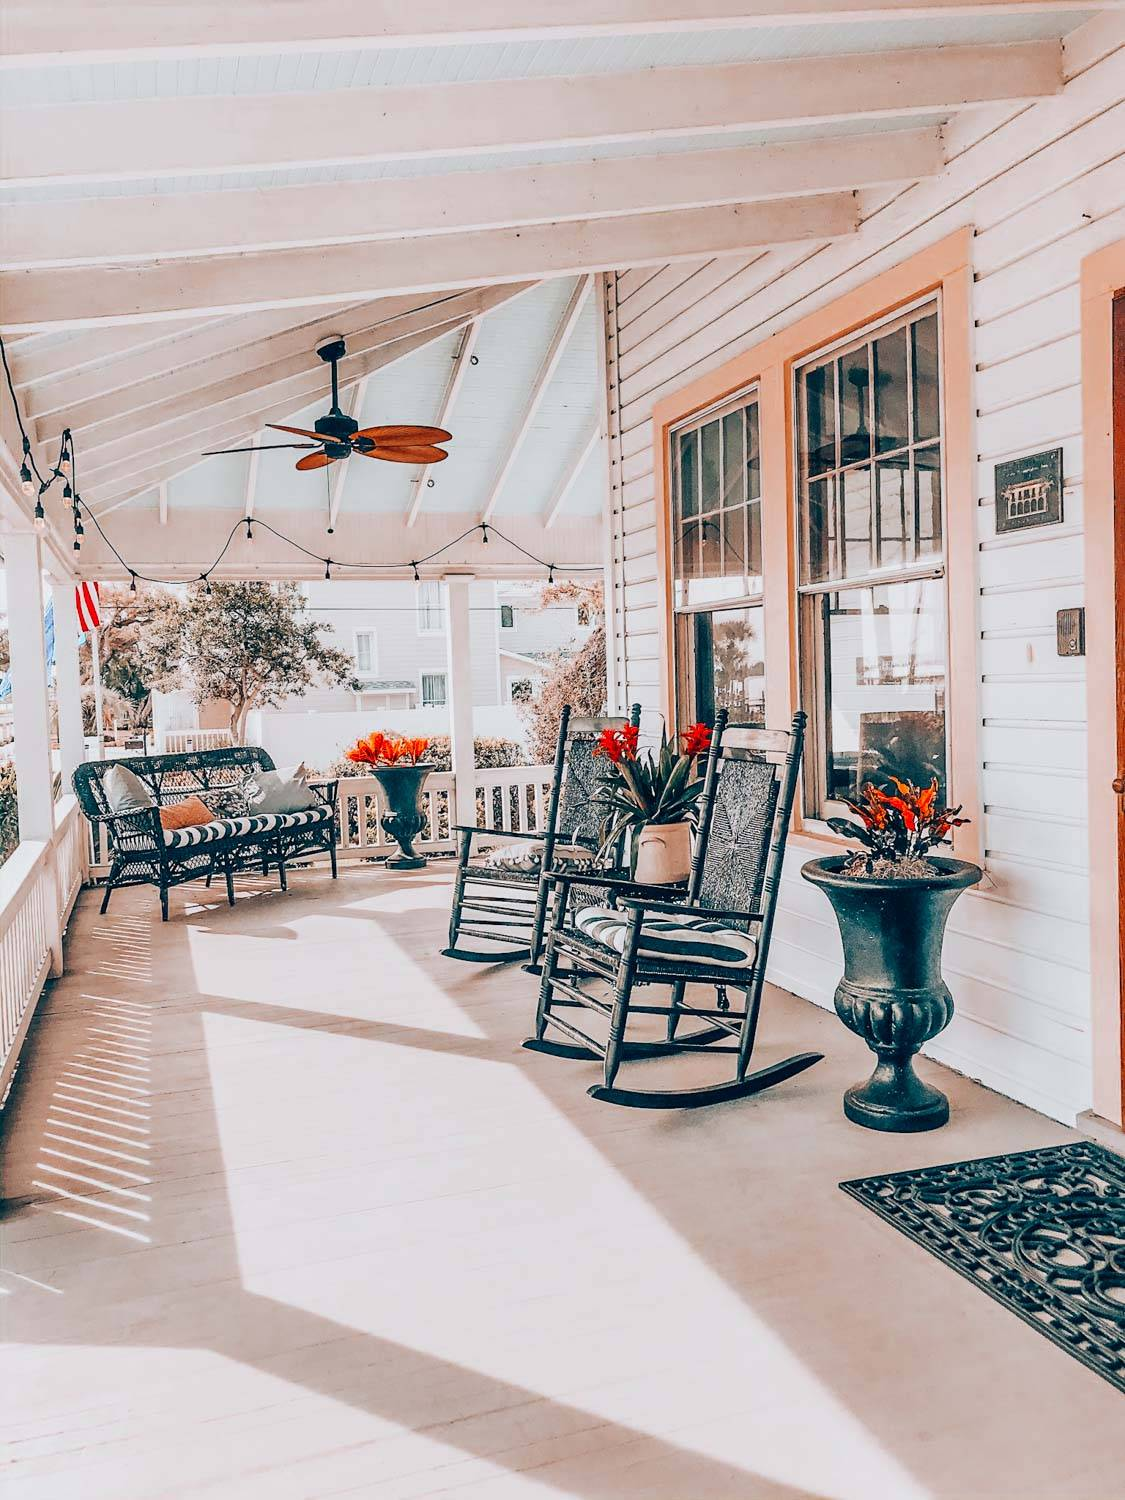 Stay at the most charming Bnb in New Smyrna Beach. The night Swan is one of the best places to stay.